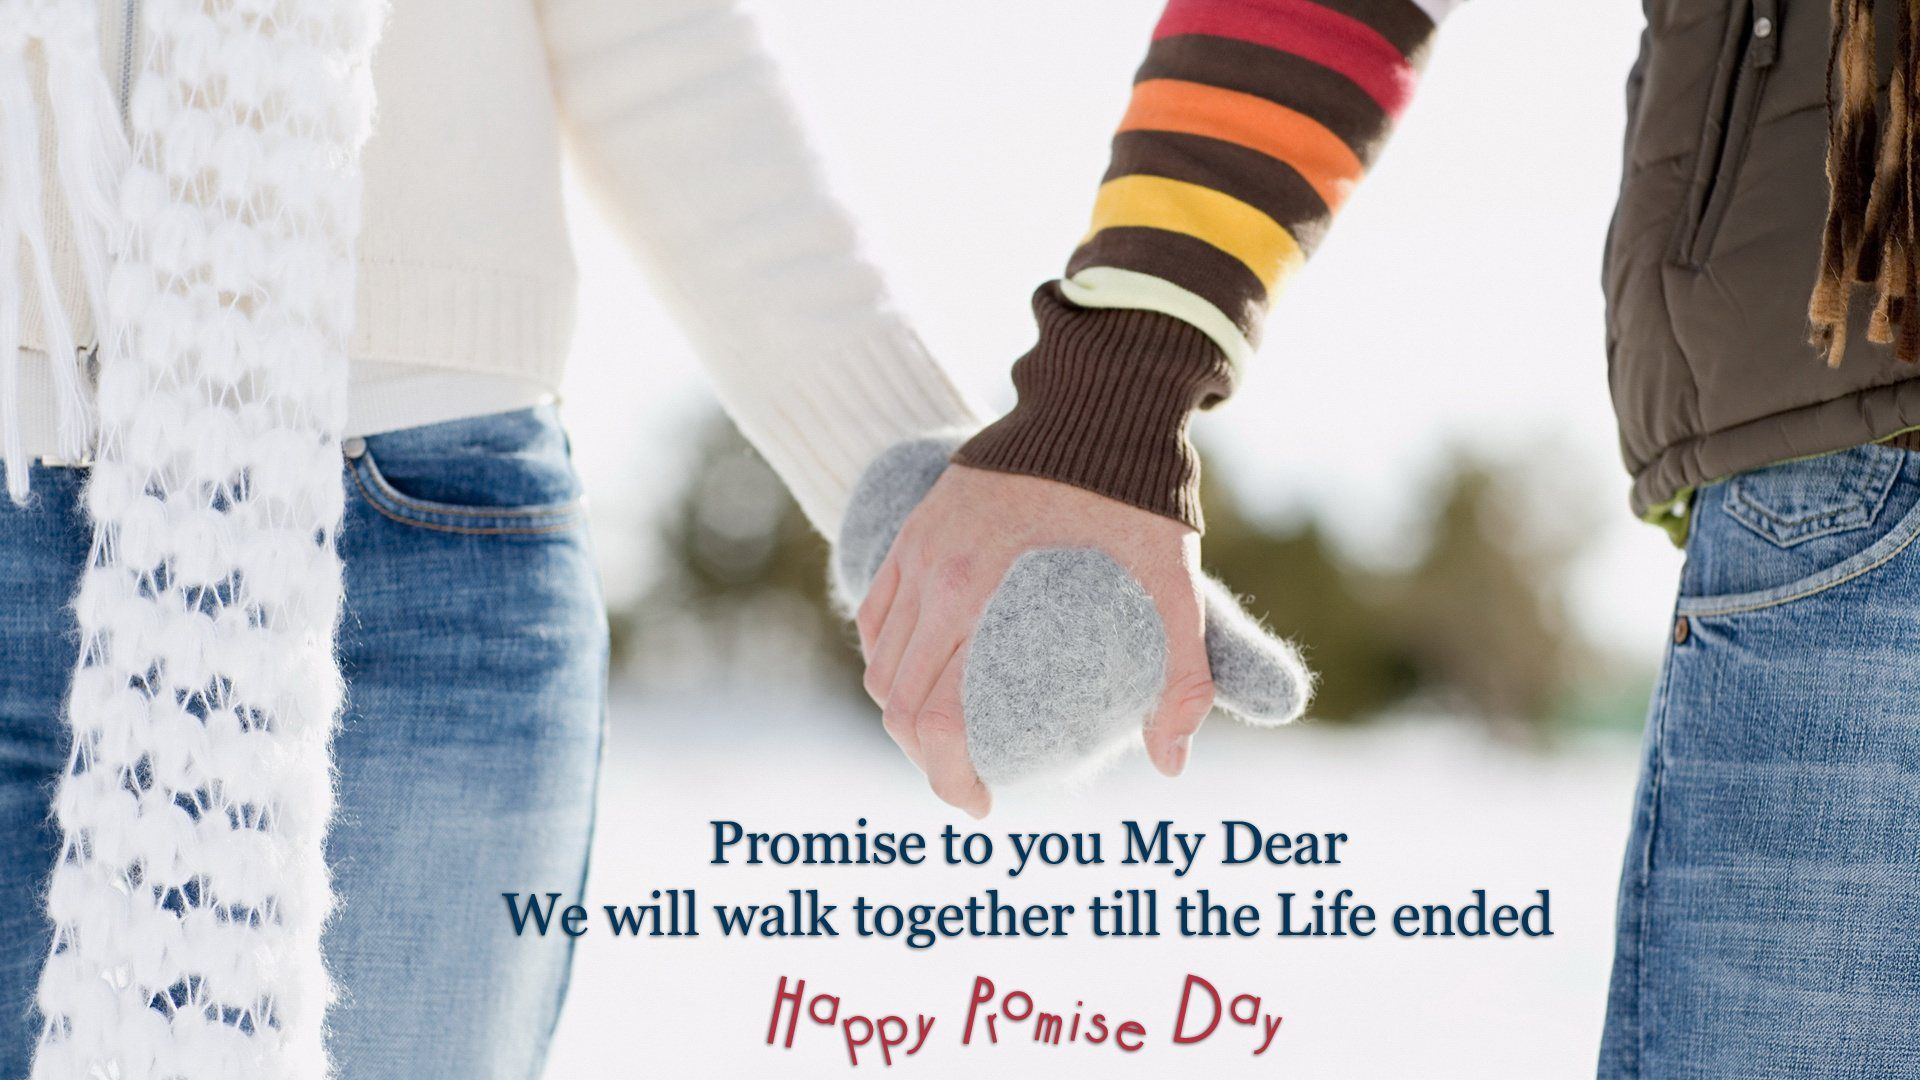 Love Is All About Trust Win You Friend S Or Lover Trust By Sending Cute Promise Day Sms On This R Happy Promise Day Happy Promise Day Image Promise Day Images